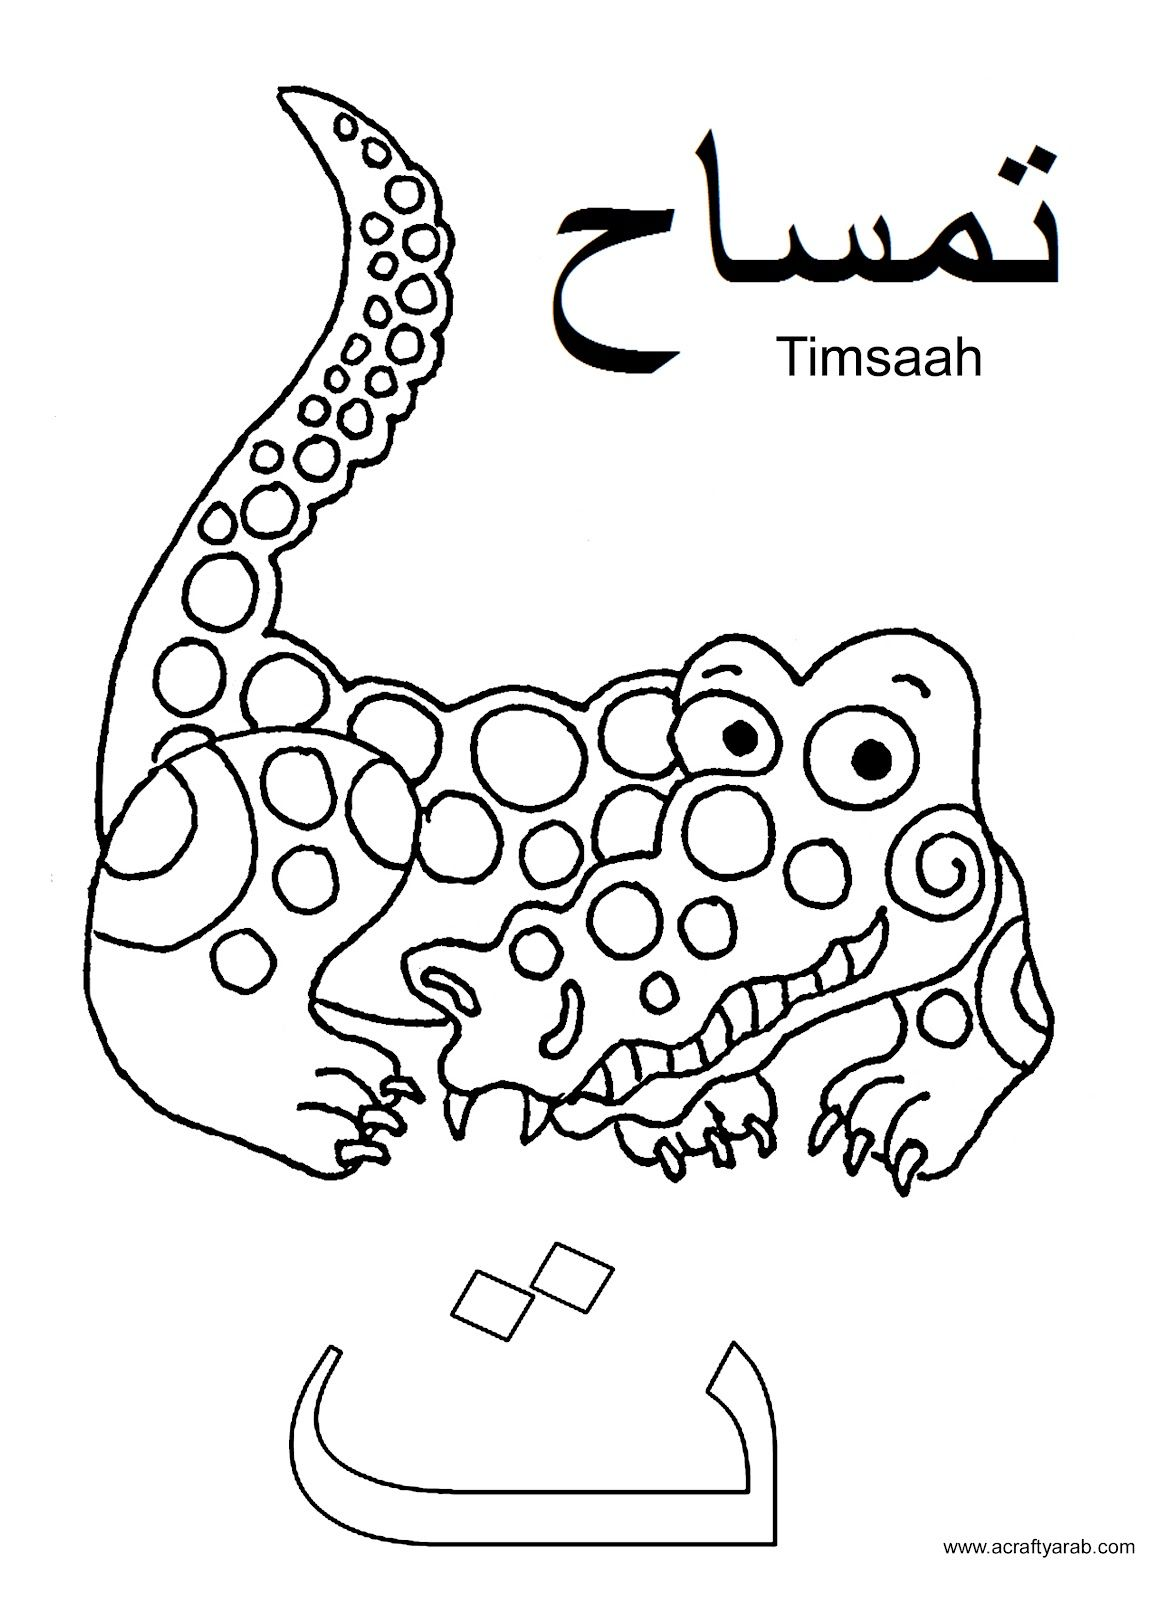 printable pages of the arabic alphabet to color - Alphabet Printable Coloring Pages